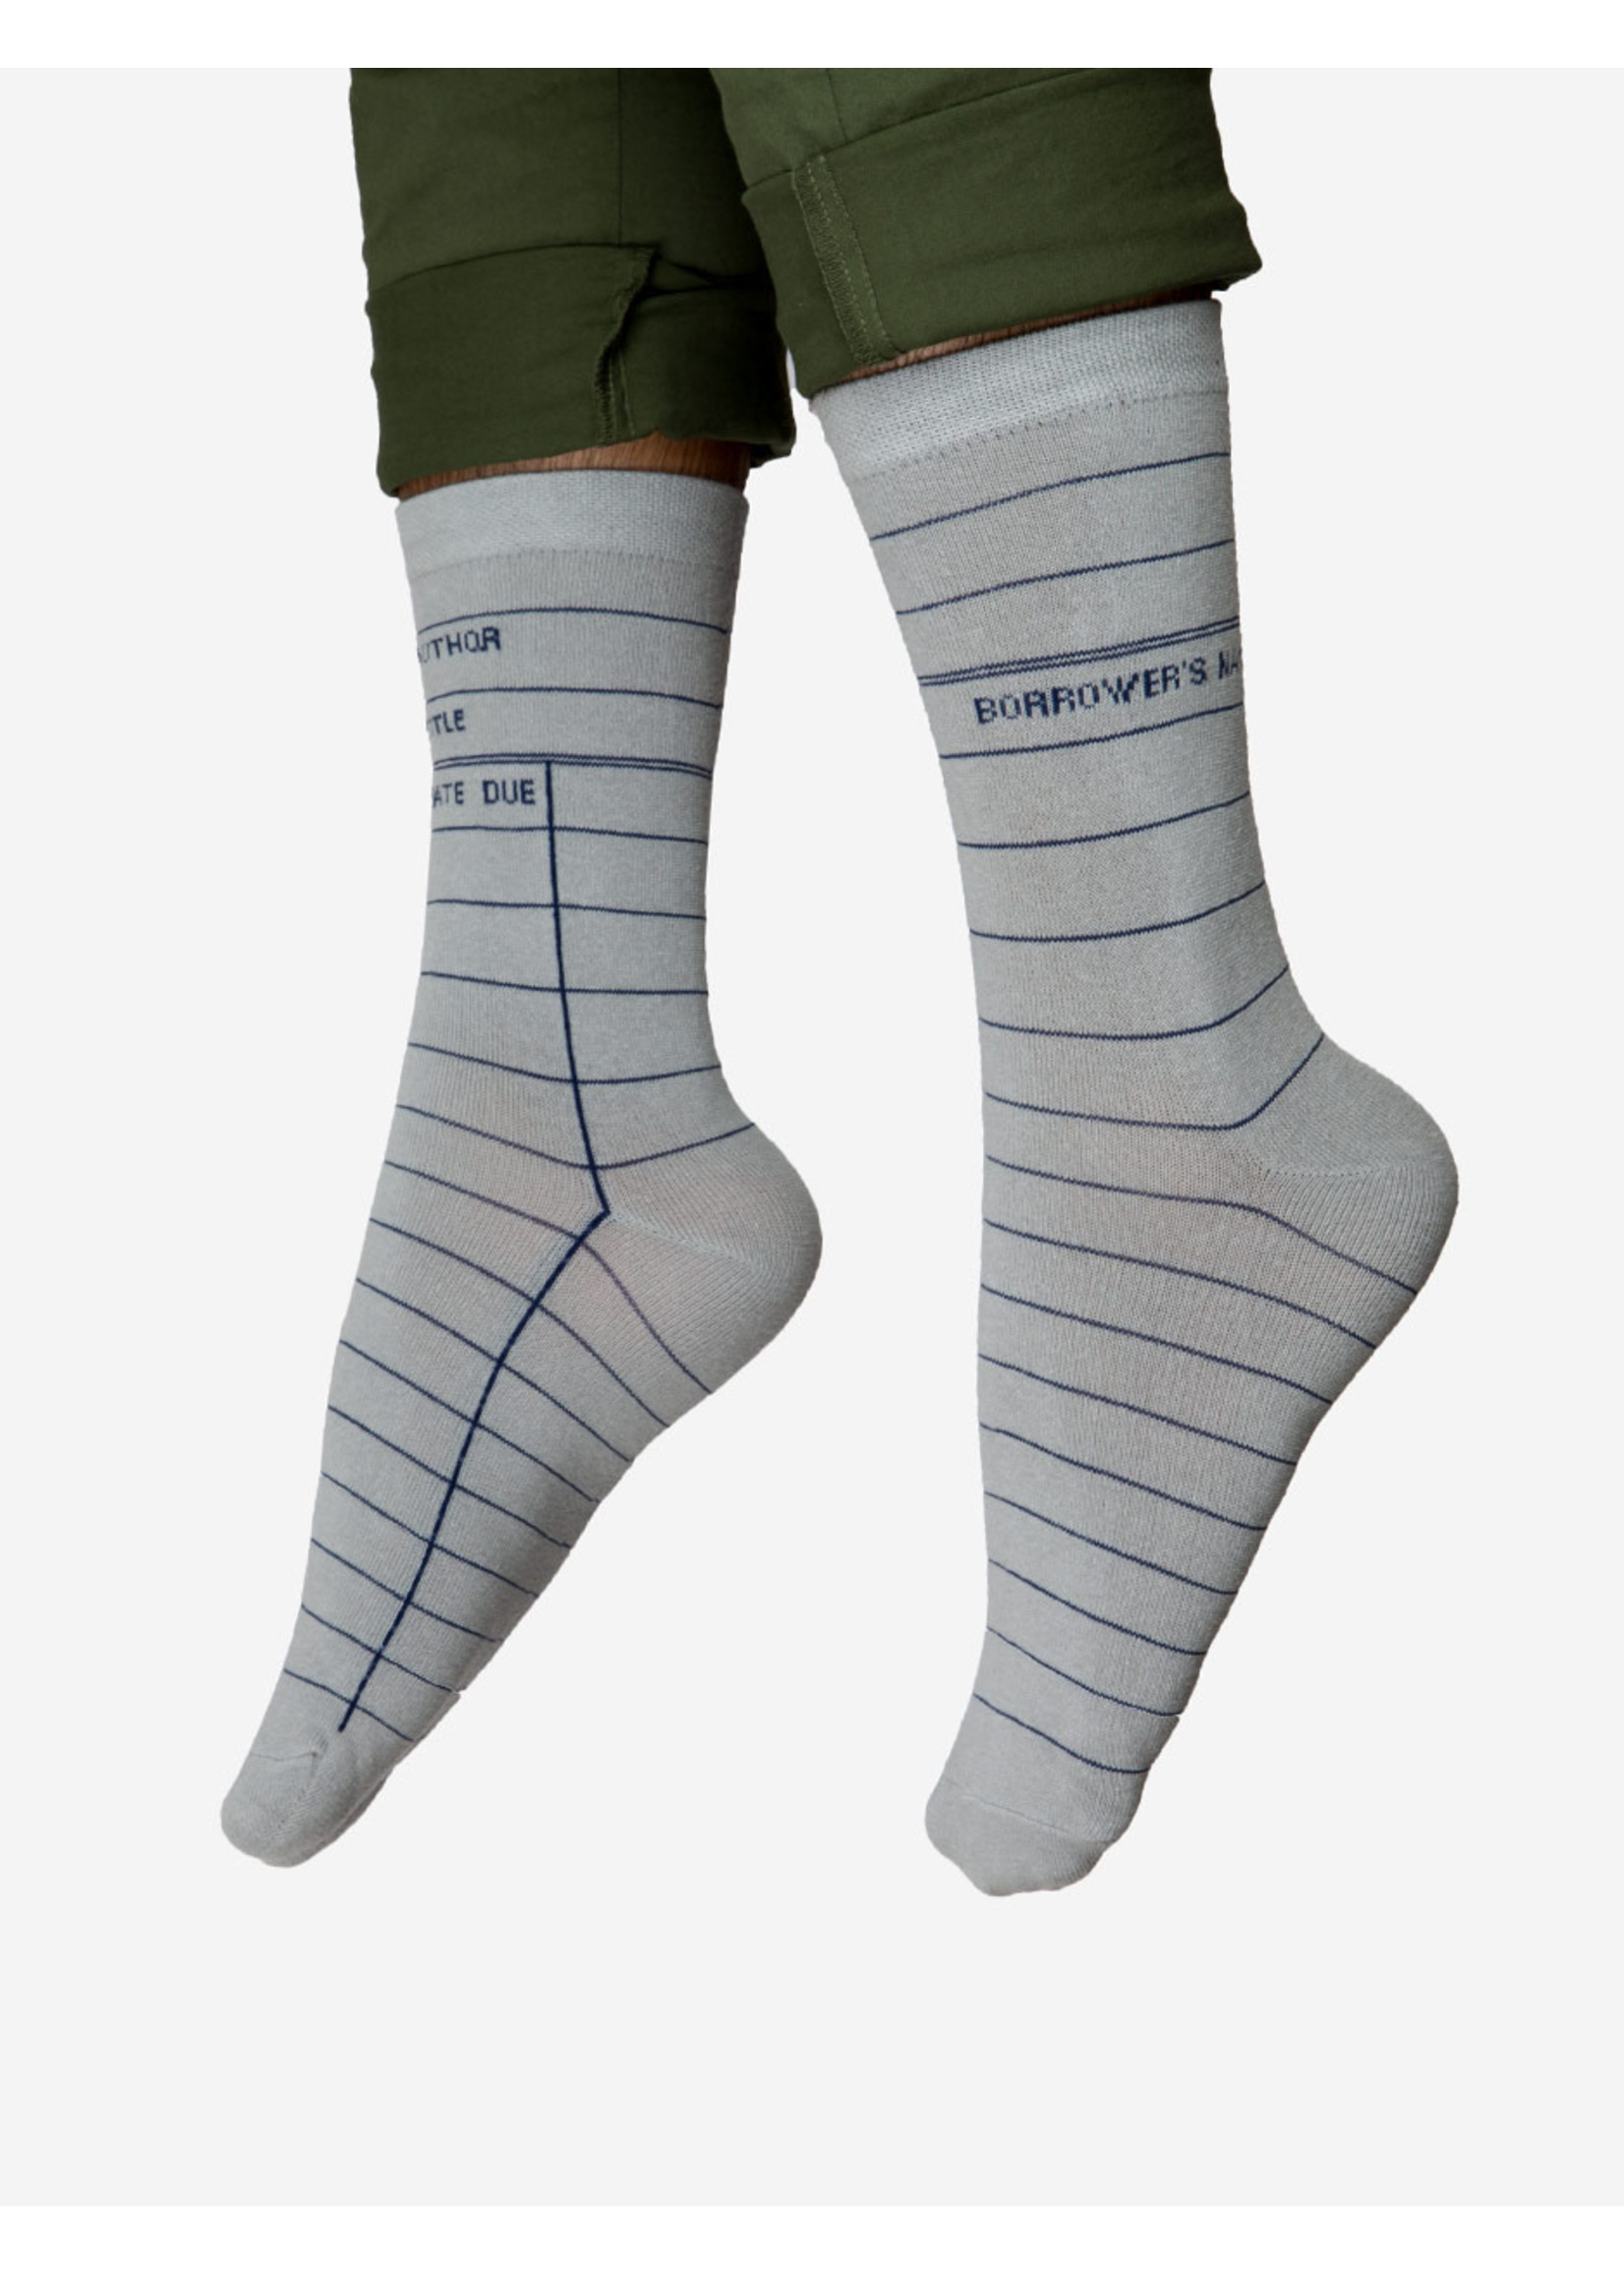 Out of Print Library Card Socks - Adult